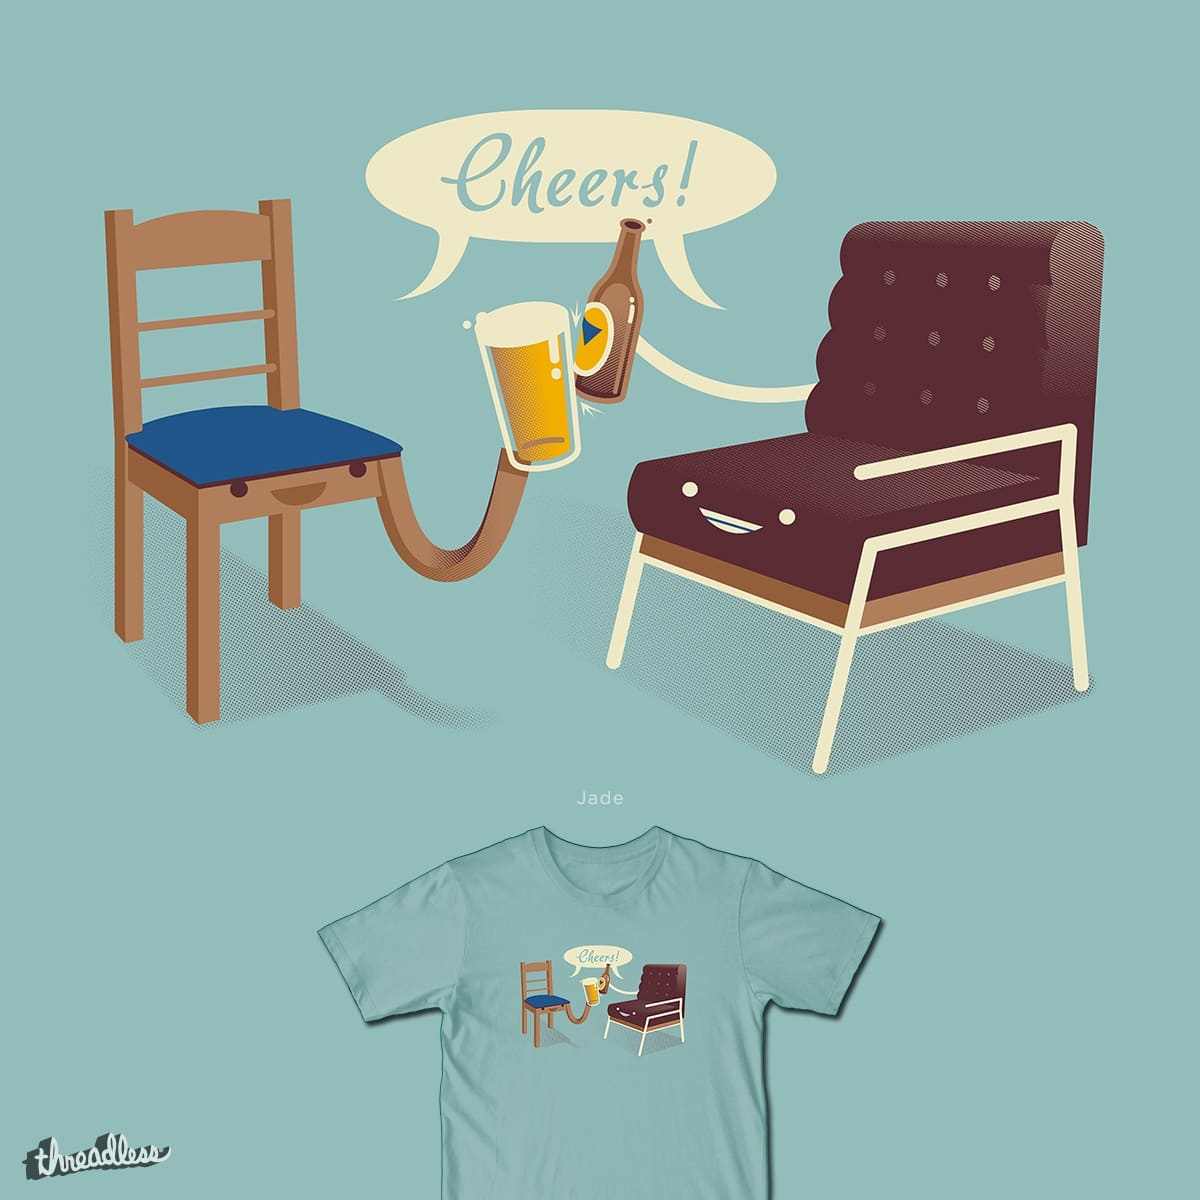 Cheers! by HtCRU on Threadless